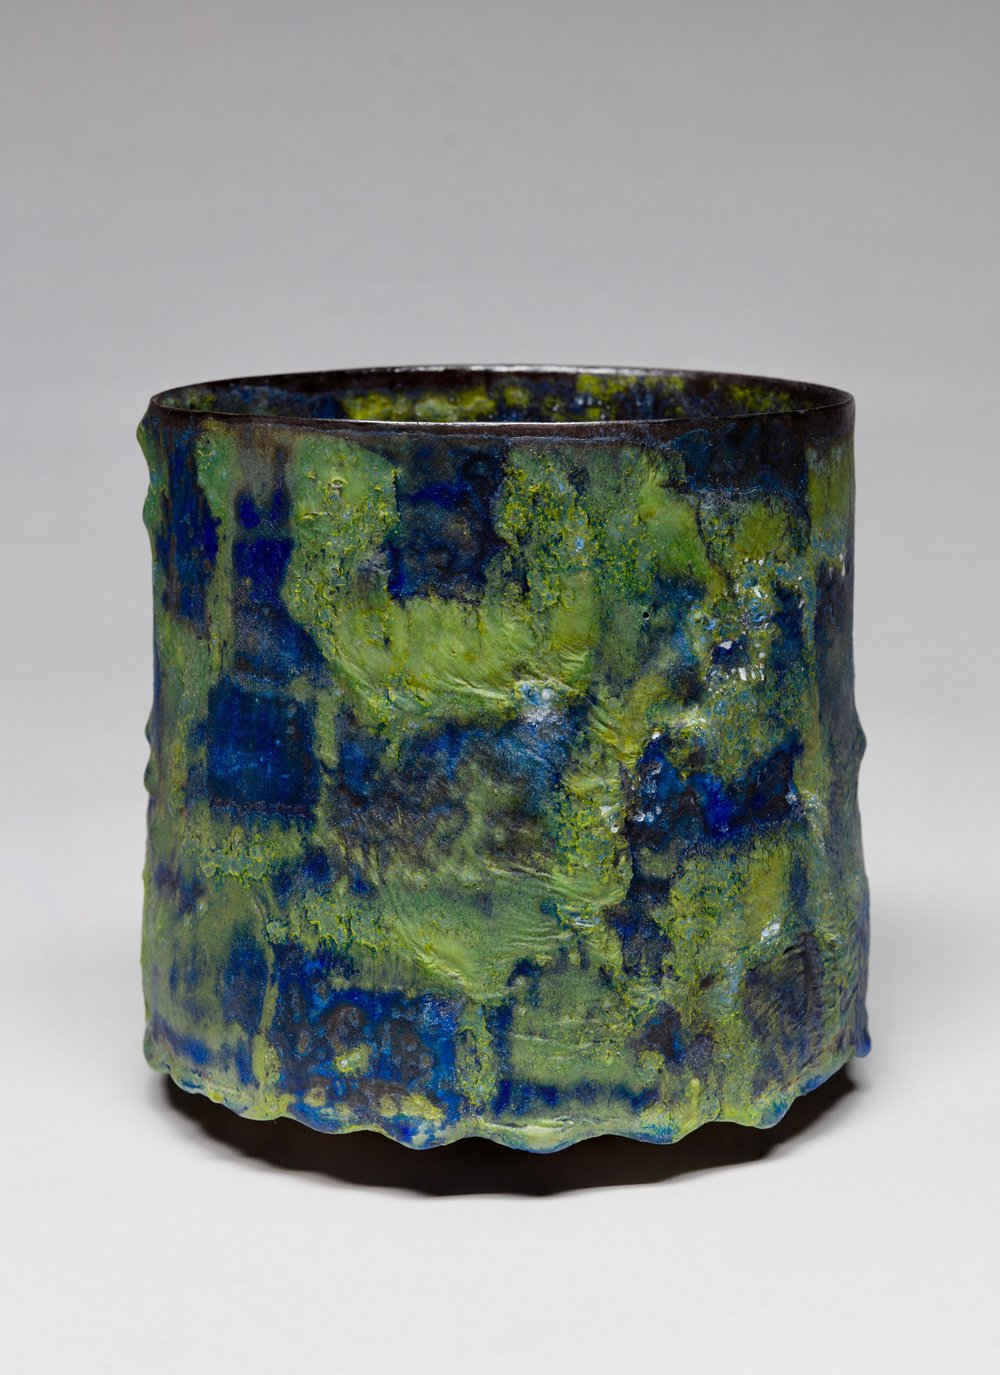 4 -  Pictorial Vessel,  2016   Ceramic, crater glaze - Signed and dated H. 21,6 x D. 21,6 cm H. 8.5 x D. 8.5 in. Unique  JK#1091